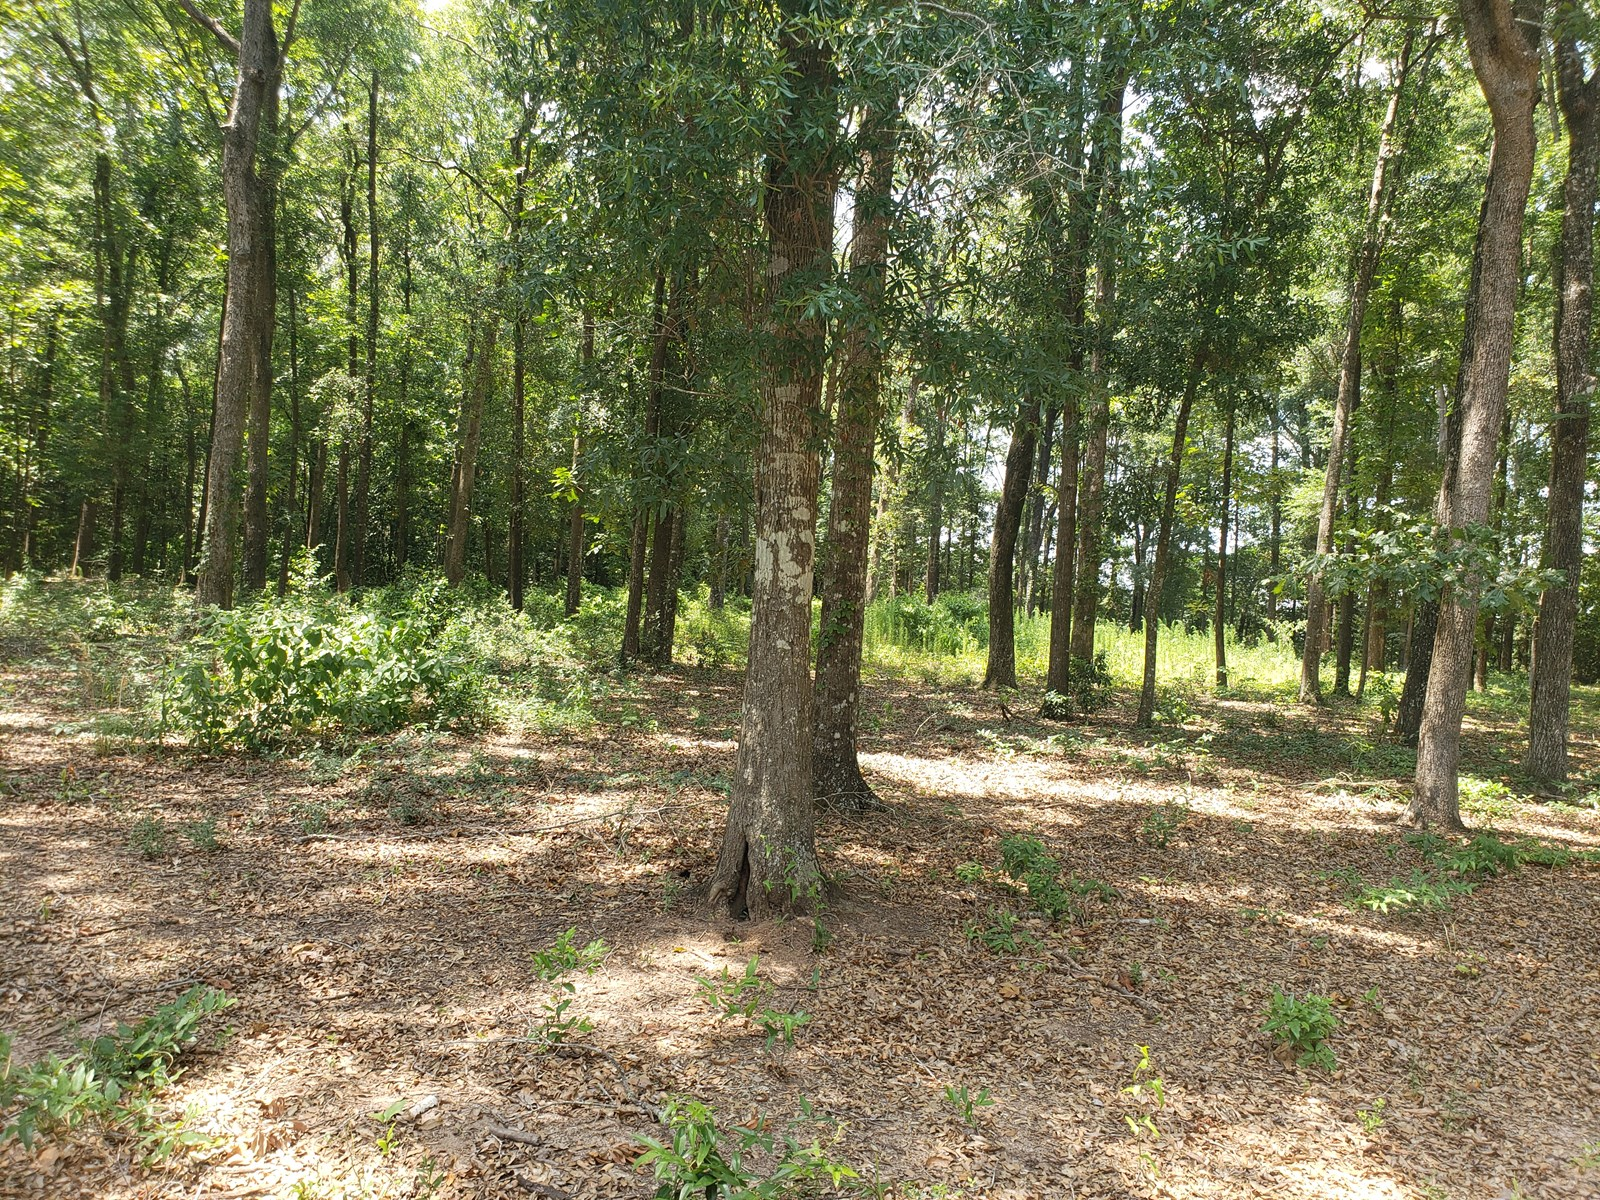 1.85 ACRE LOT ON COUNTY ROAD 55, HARTFORD, ALABAMA